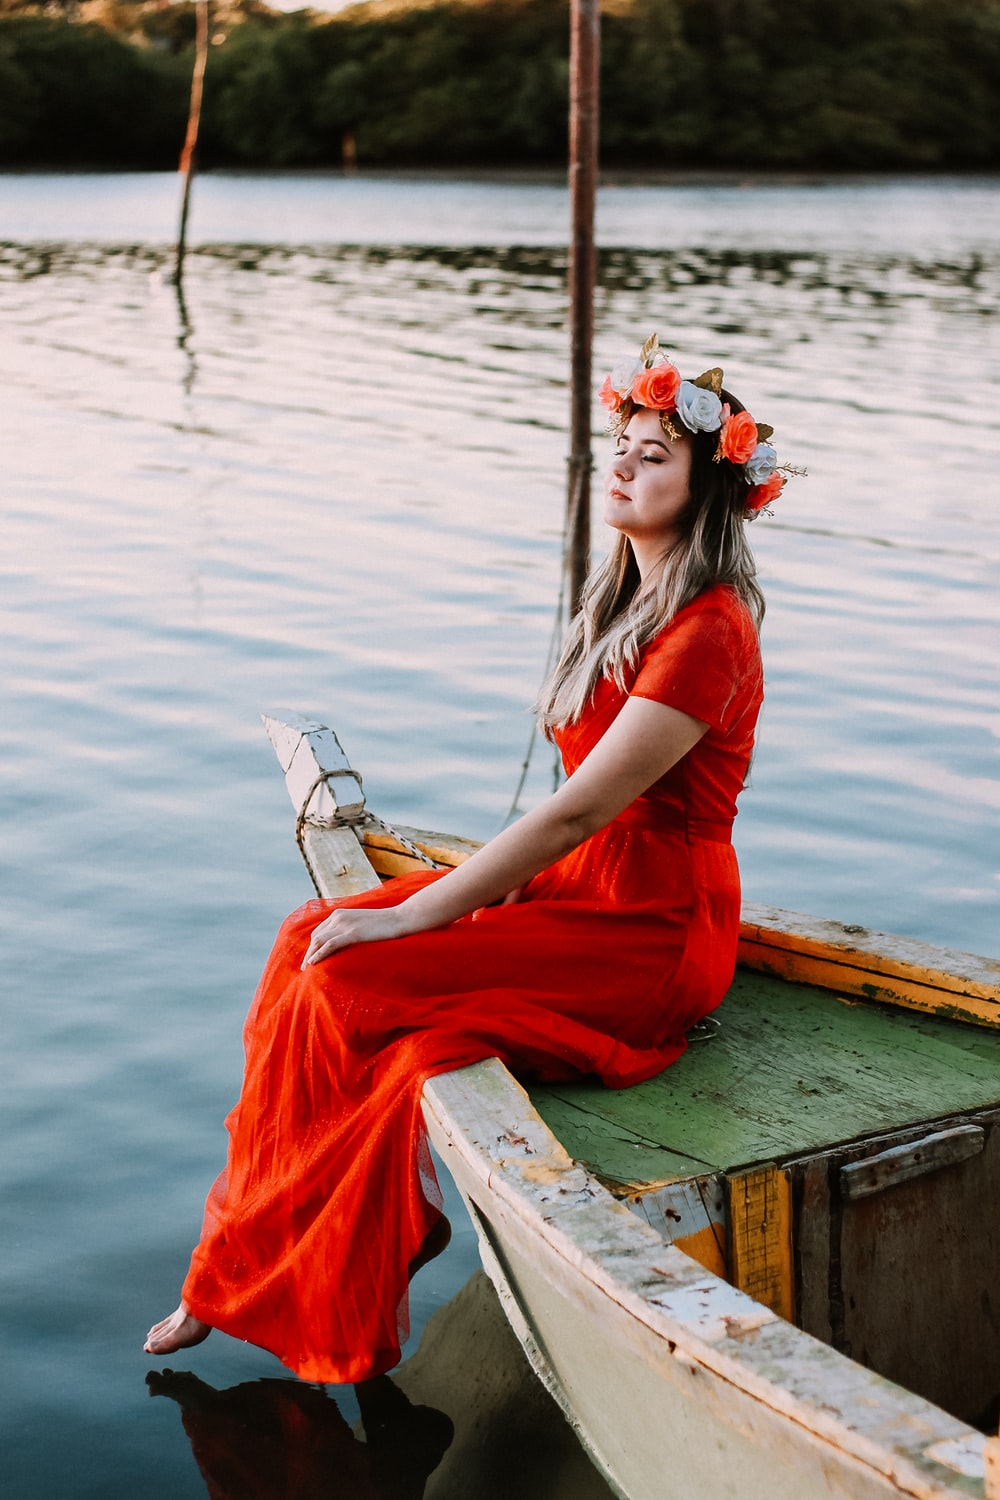 woman sitting on boat in body of water while closing her eyes